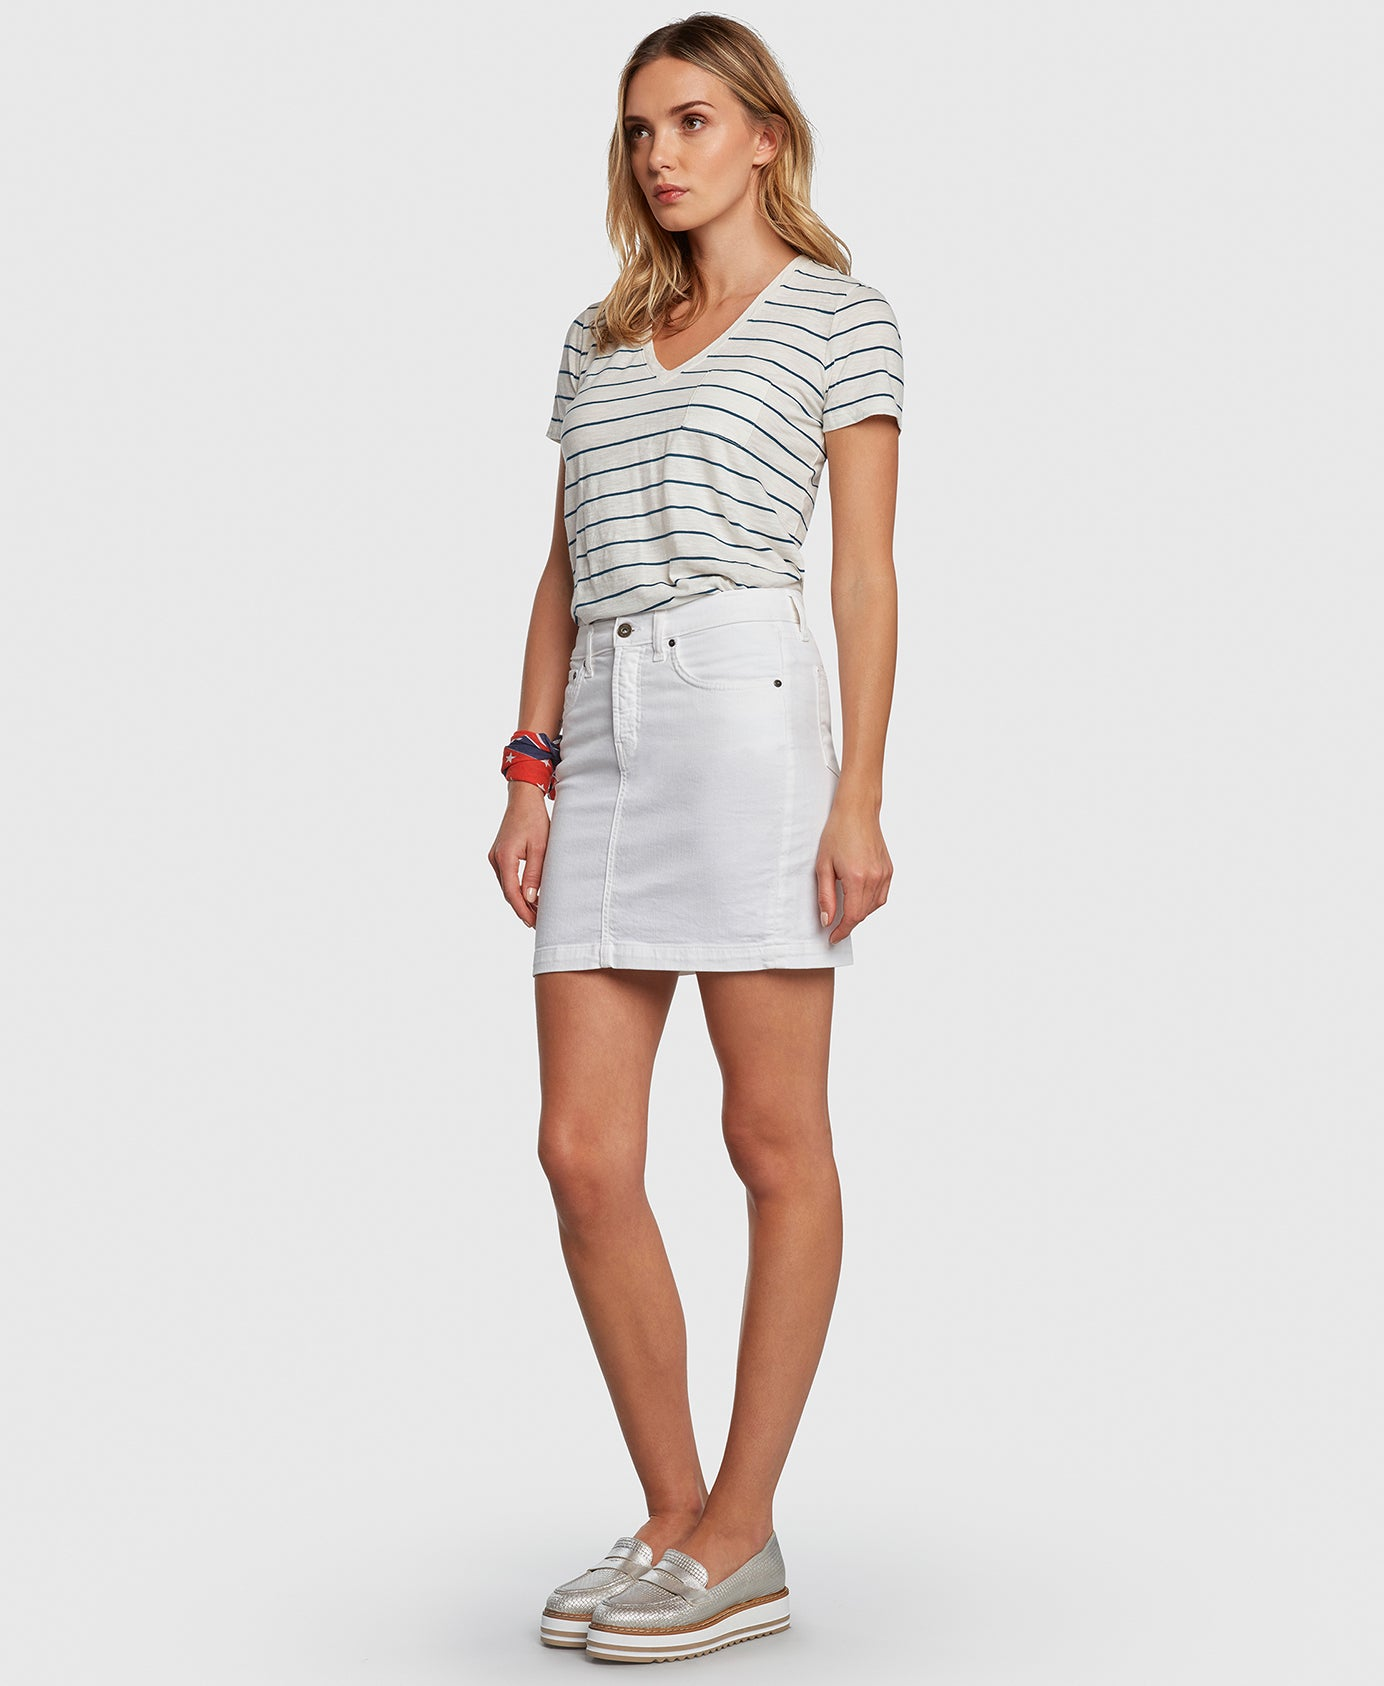 CHARMER in White Principle denim skirt side